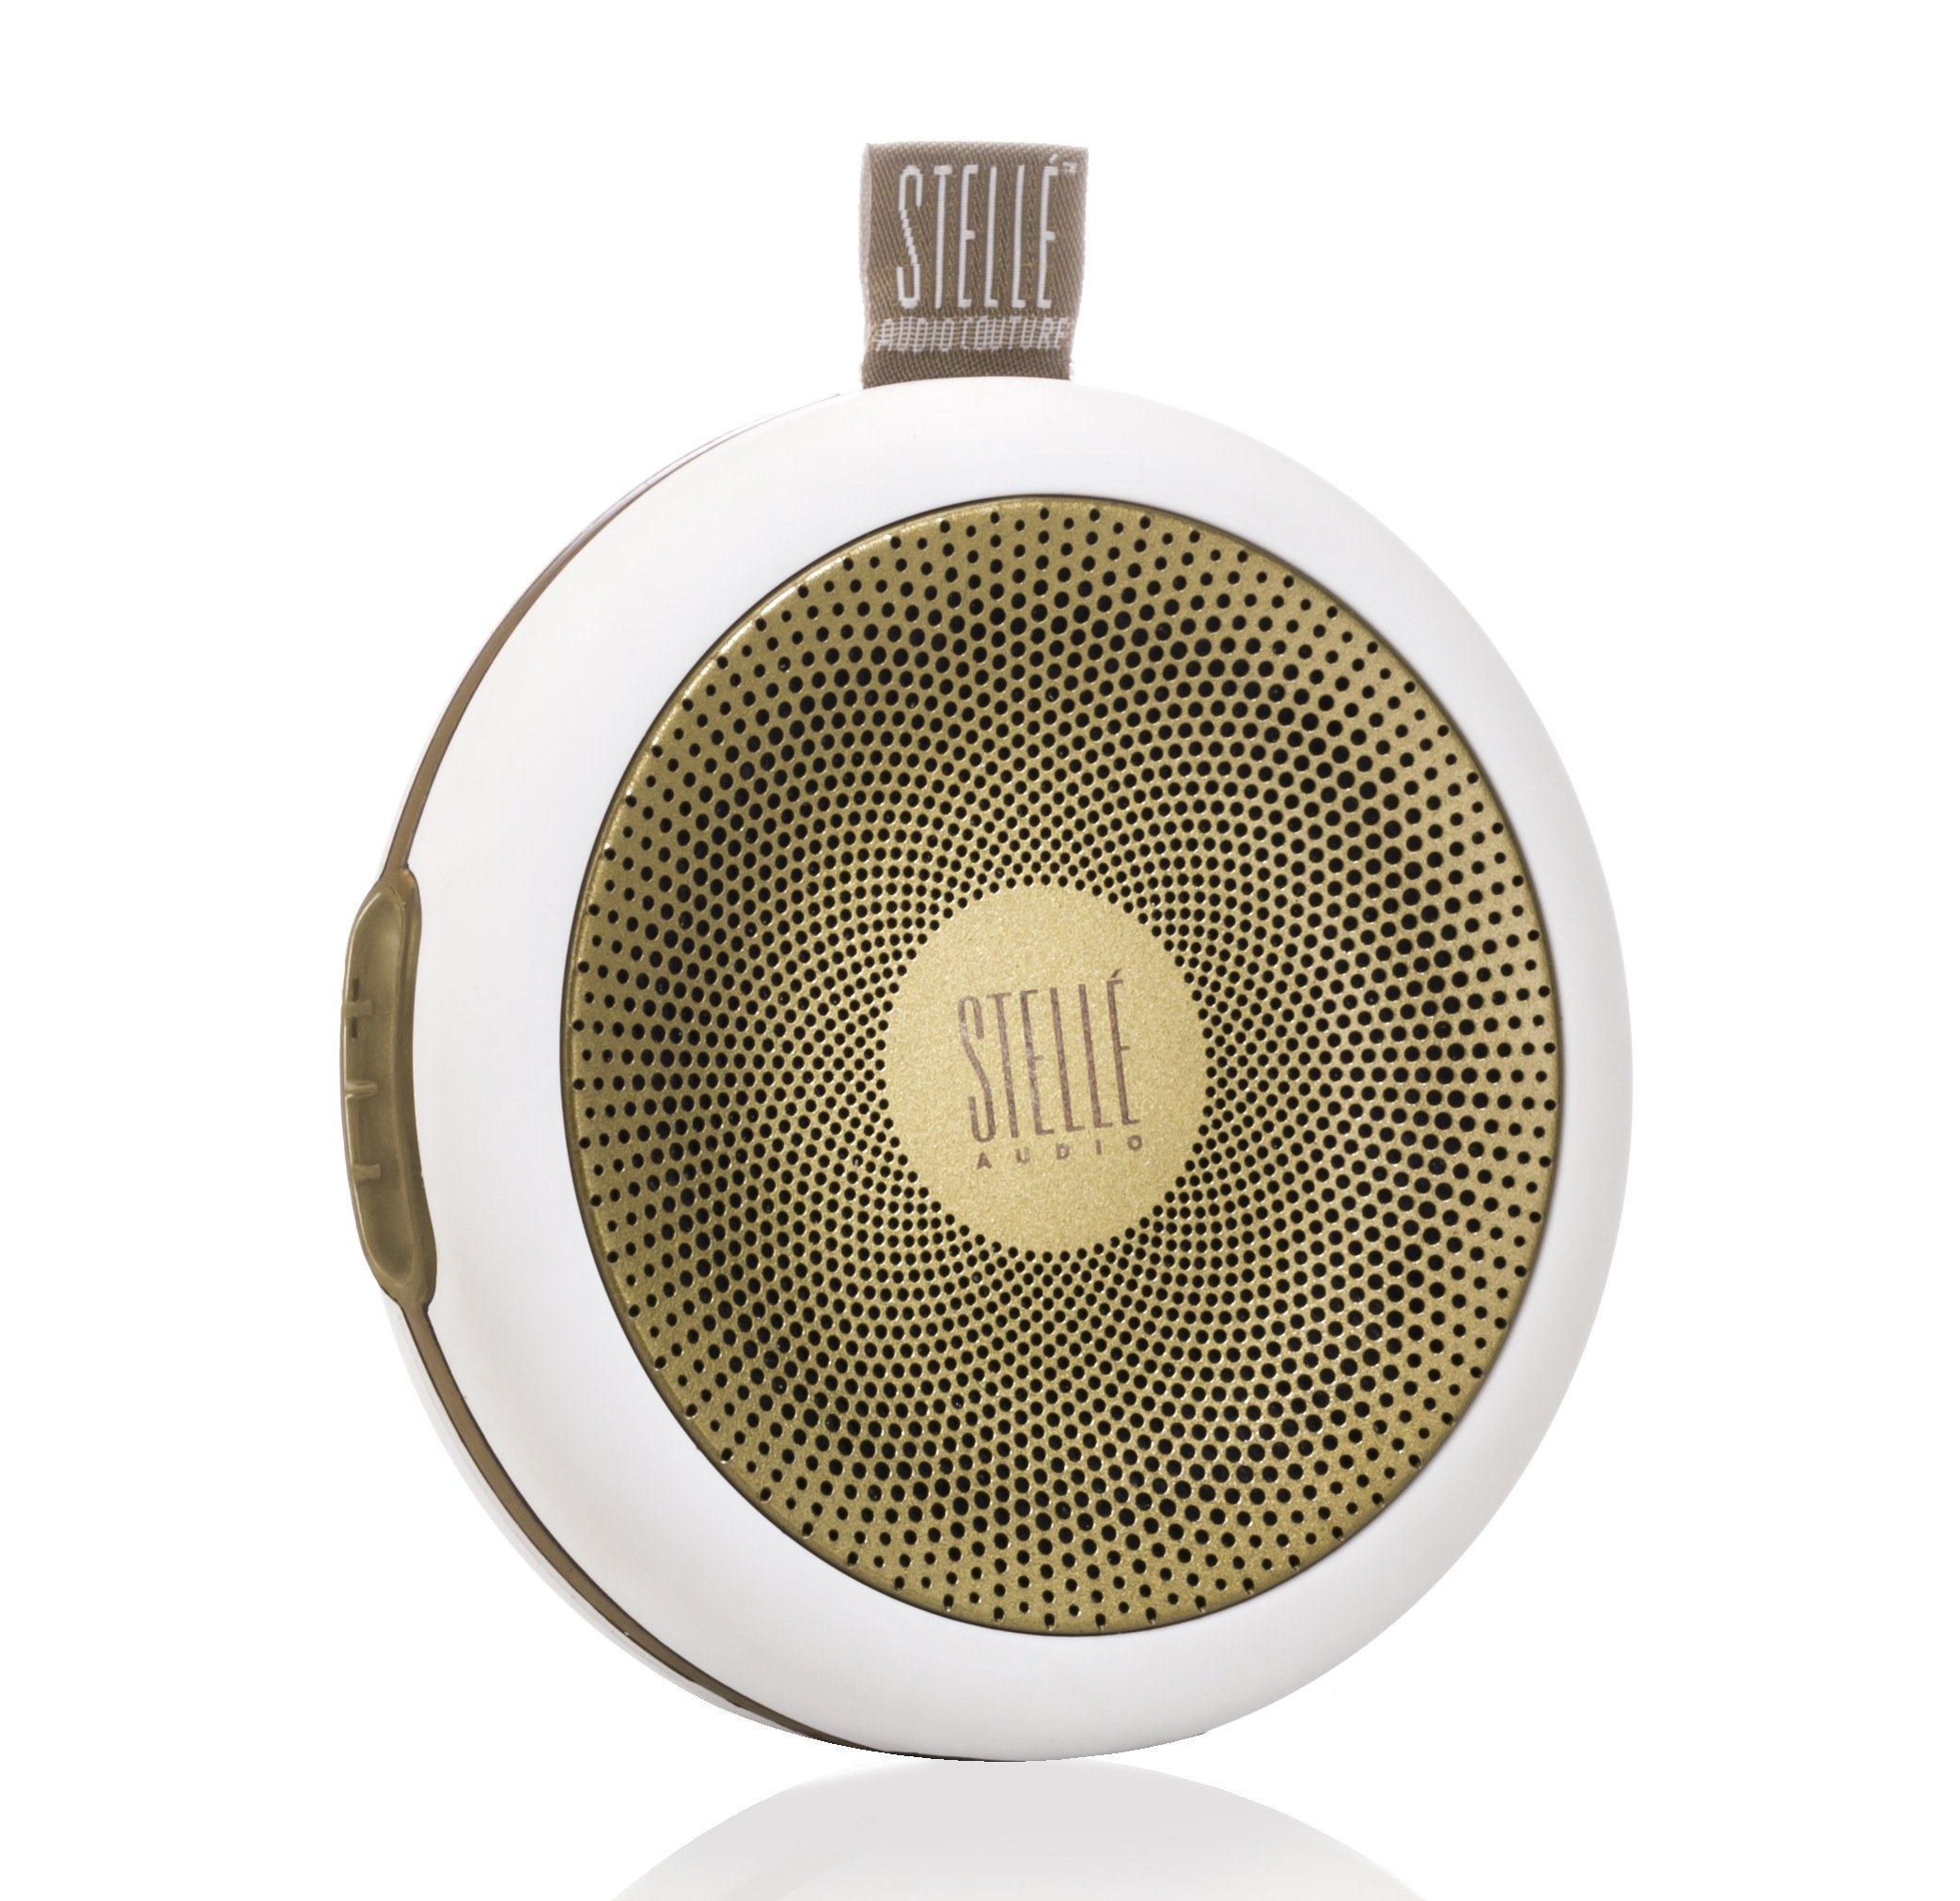 Stellé Audio Go-Go Speaker (White Gold)